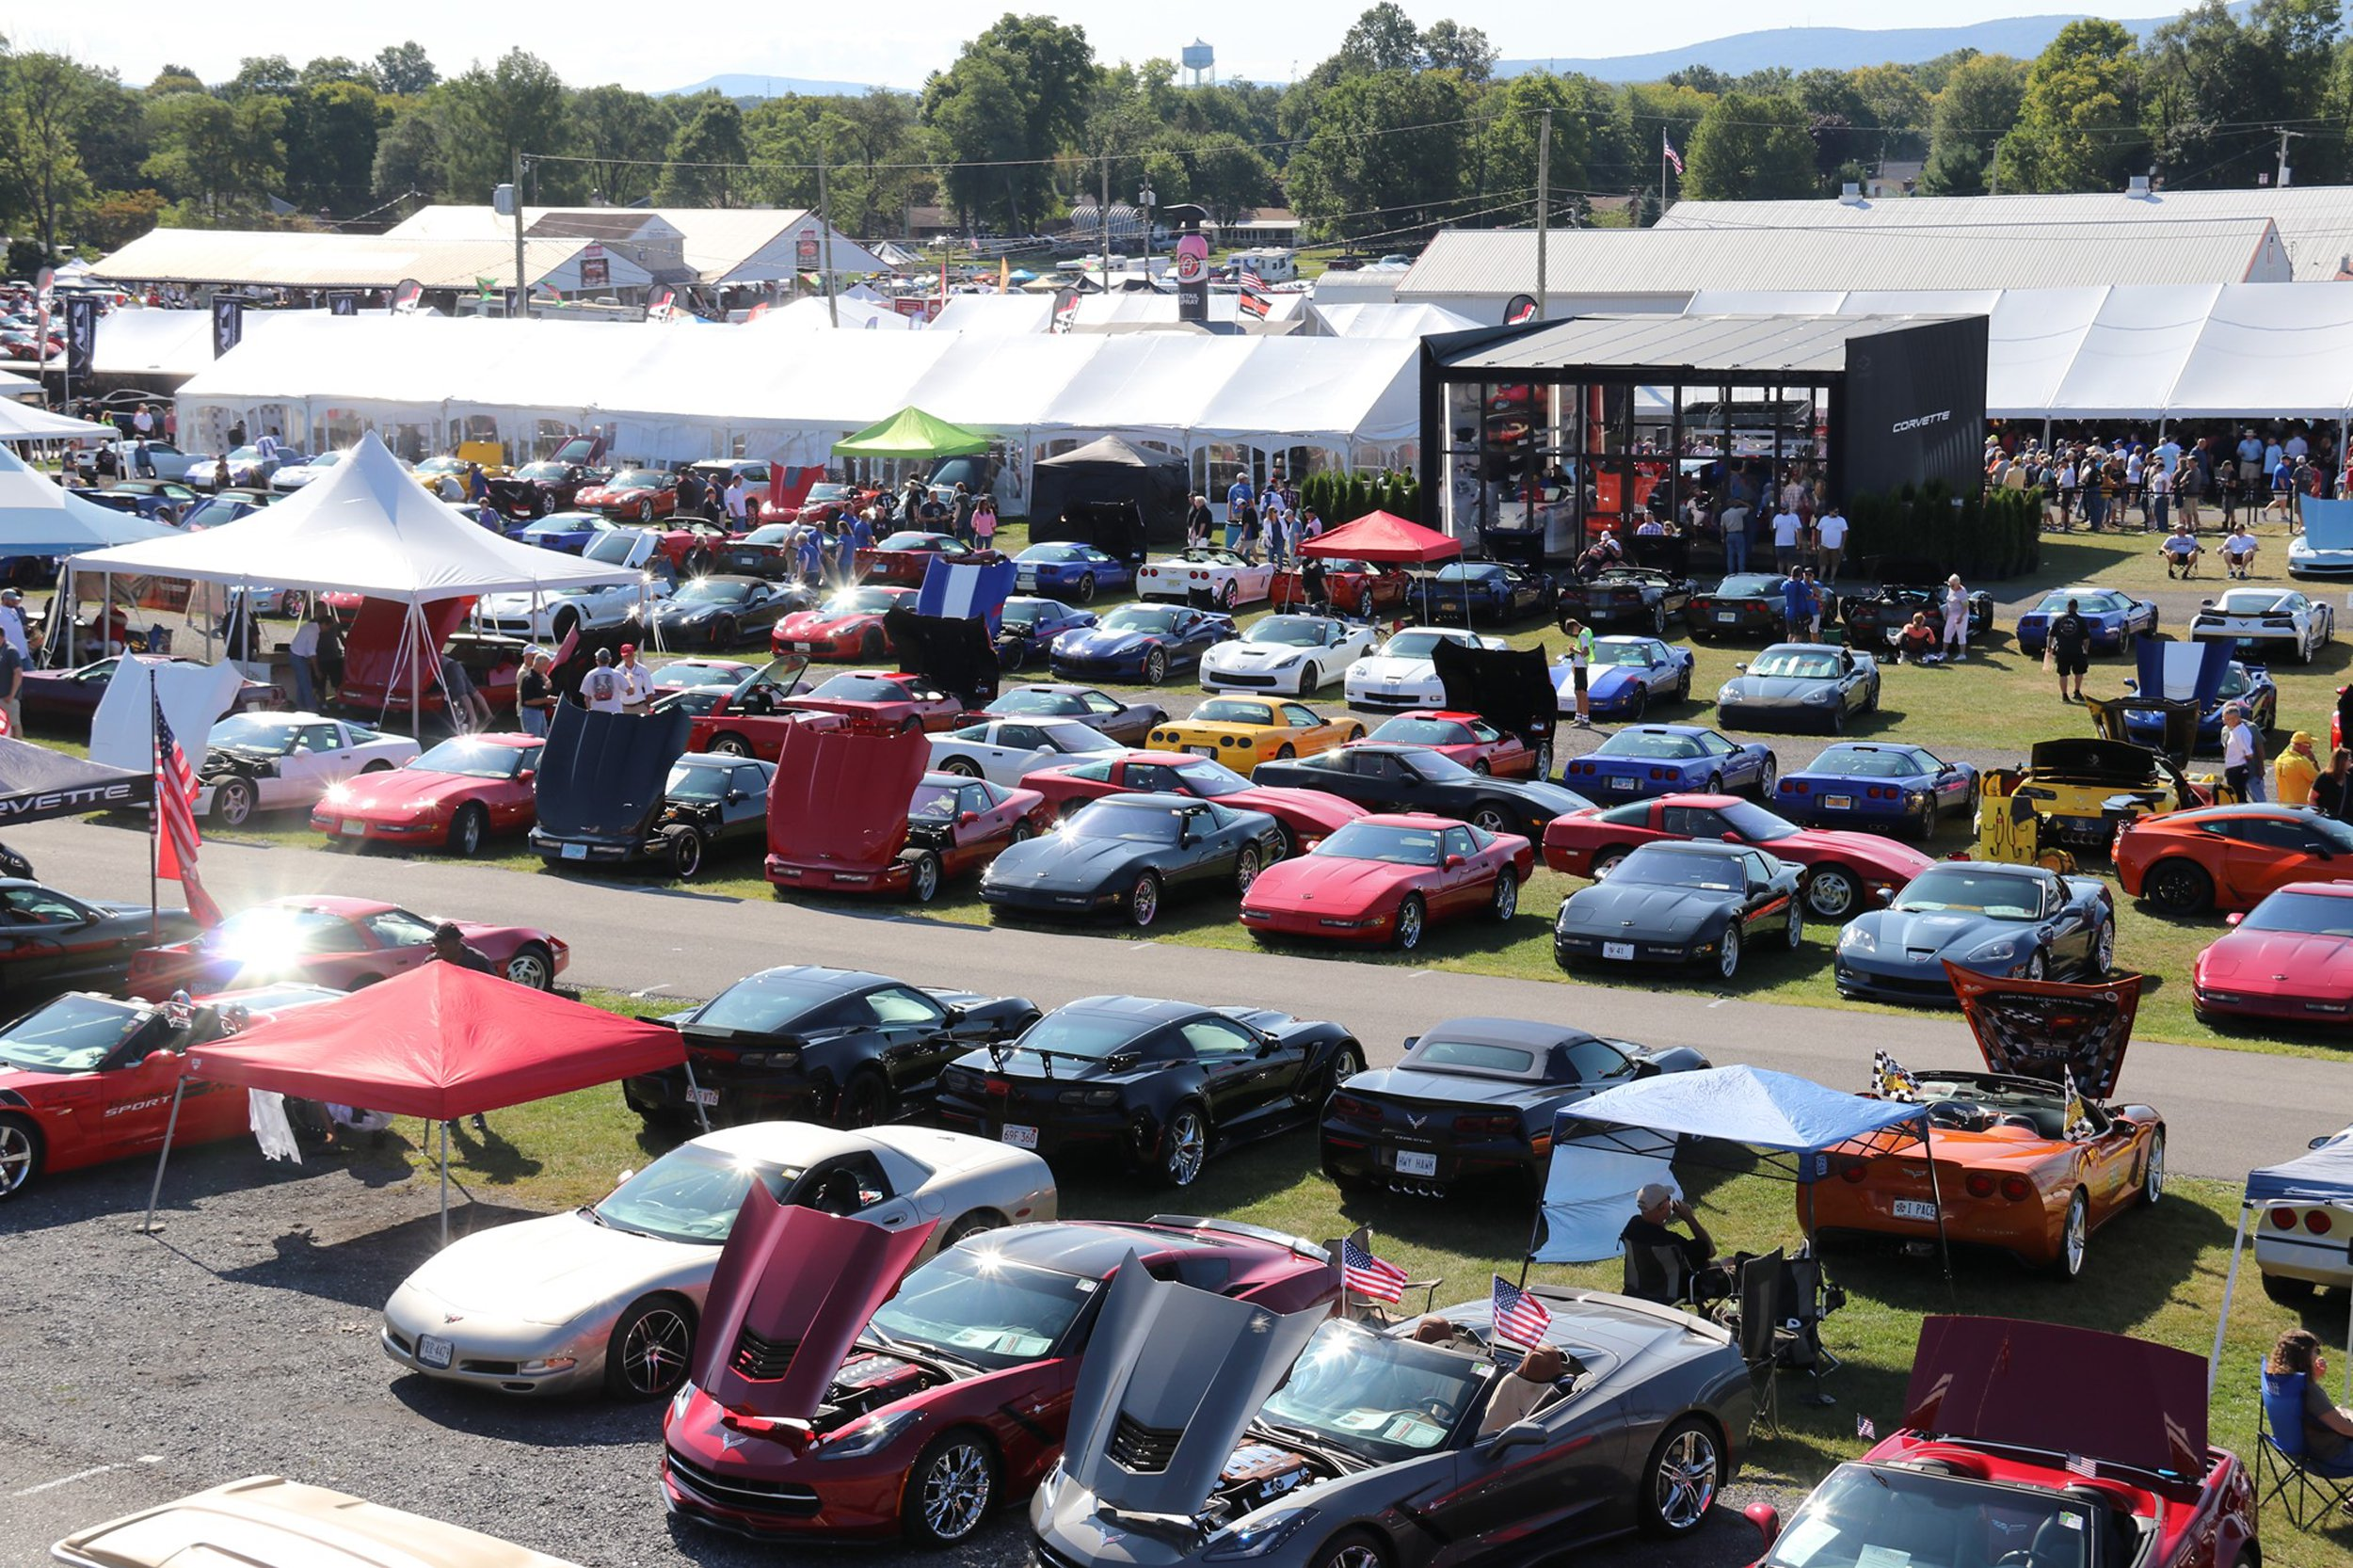 corvettes-at-carlisle-2019-one-for-the-record-books-2019-08-28_20-23-07_609853.jpg